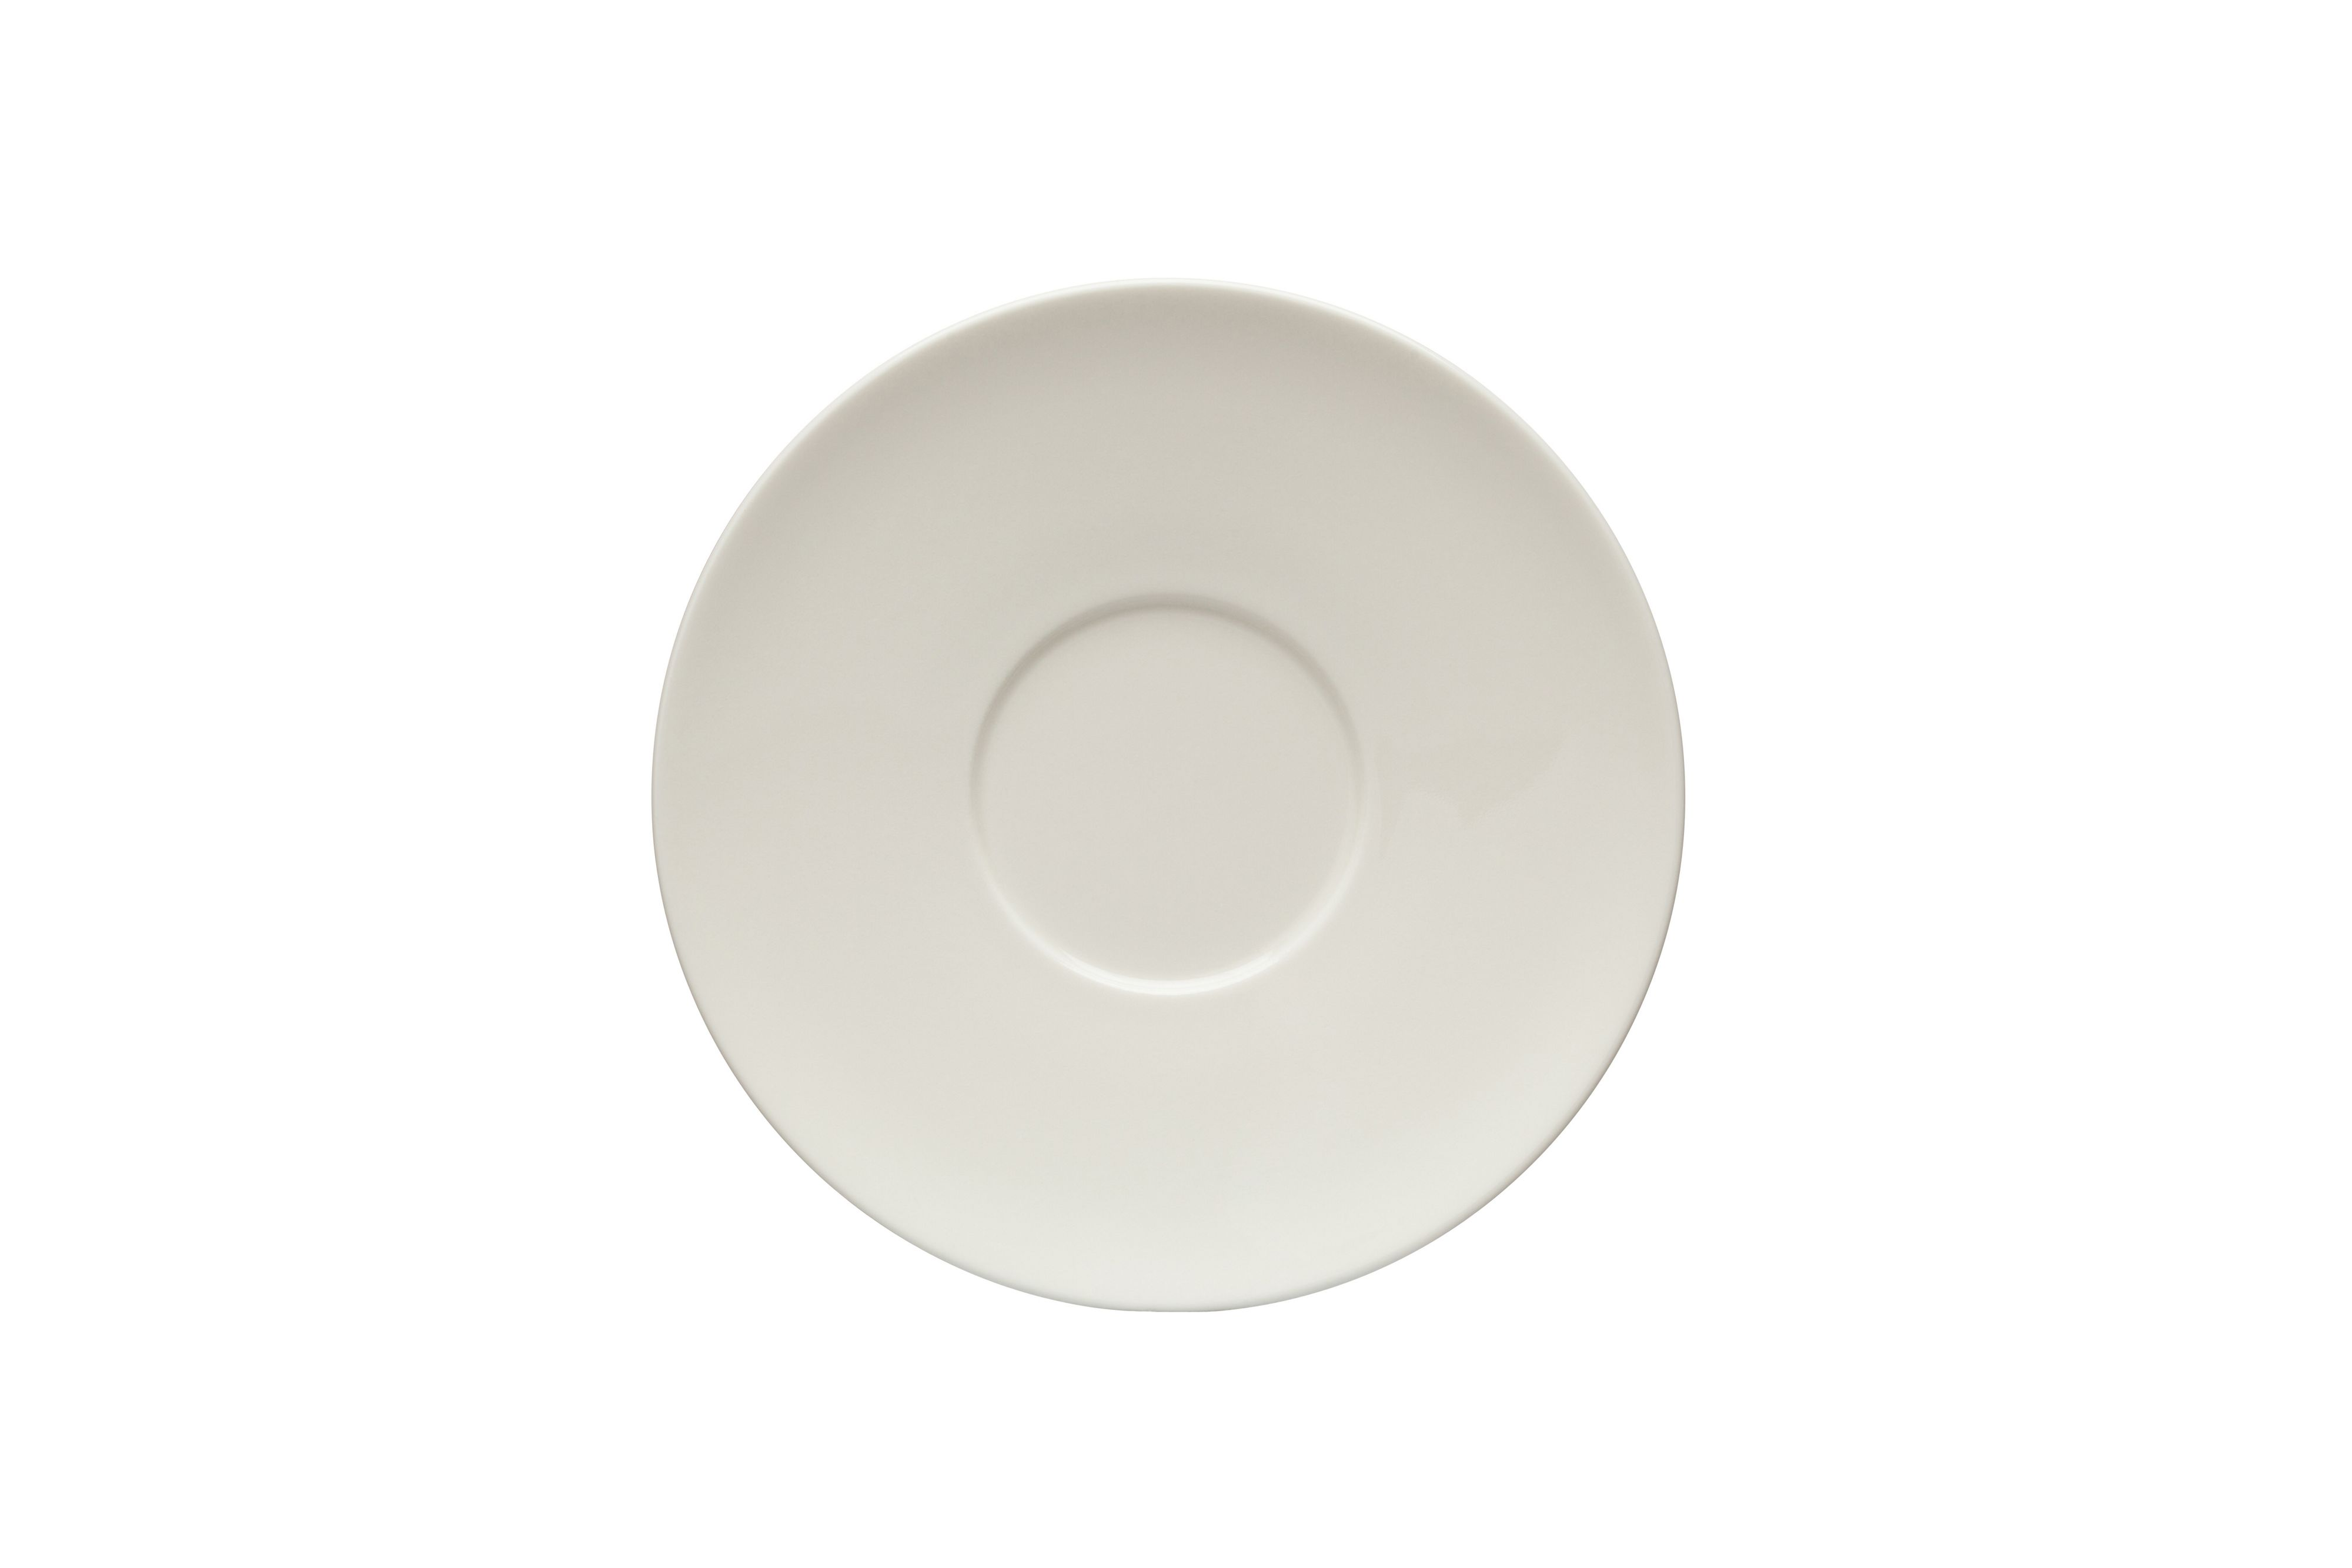 Image of Vivo by Villeroy & Boch voice basic coffee cup saucer